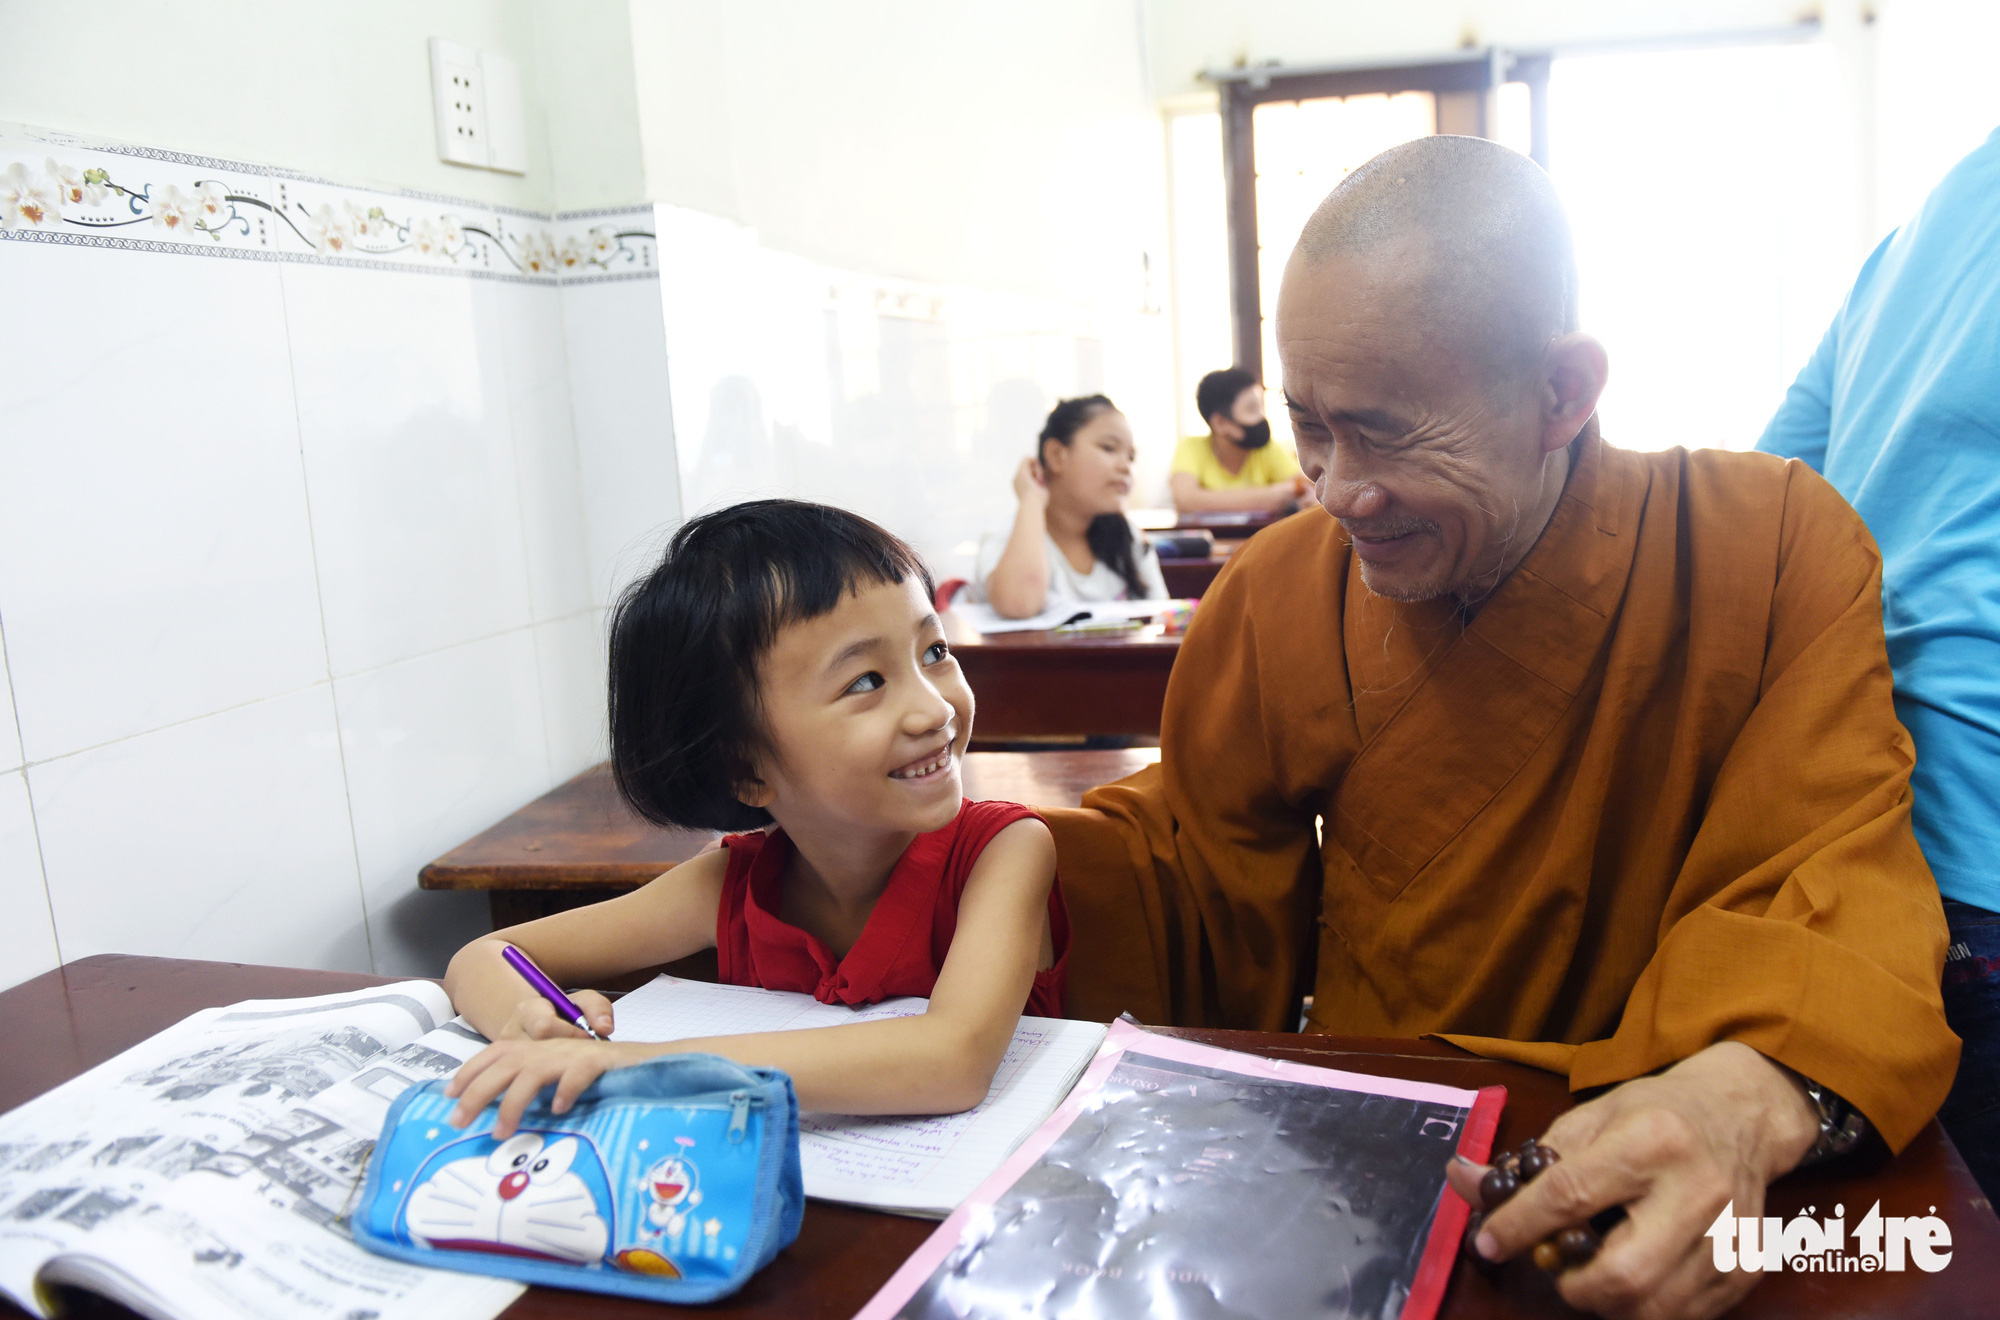 Thich Nhuan Tam (right), the abbot of La Pagoda in Go Vap District, Ho Chi Minh City, teaches in a foreign language class at the pagoda, September 13, 2020. Photo: Duyen Phan / Tuoi Tre